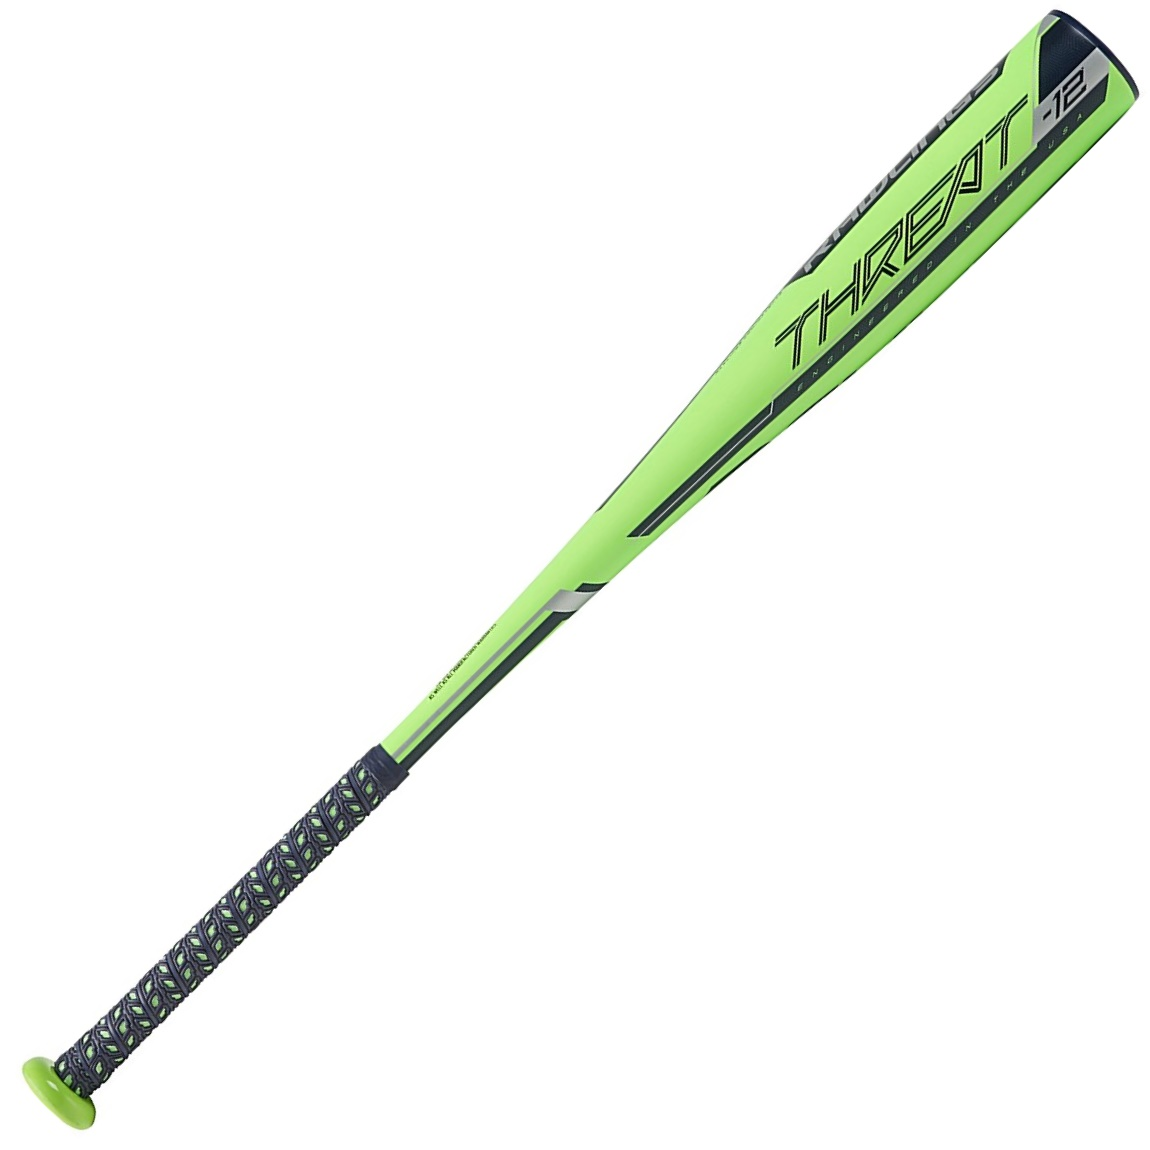 rawlings-2018-threat-usa-baseball-bat-29-inch-17-oz US9T12-2917 Rawlings 083321534959 100% composite design - increases trampoline and overall pop Ultra-lightweight construction